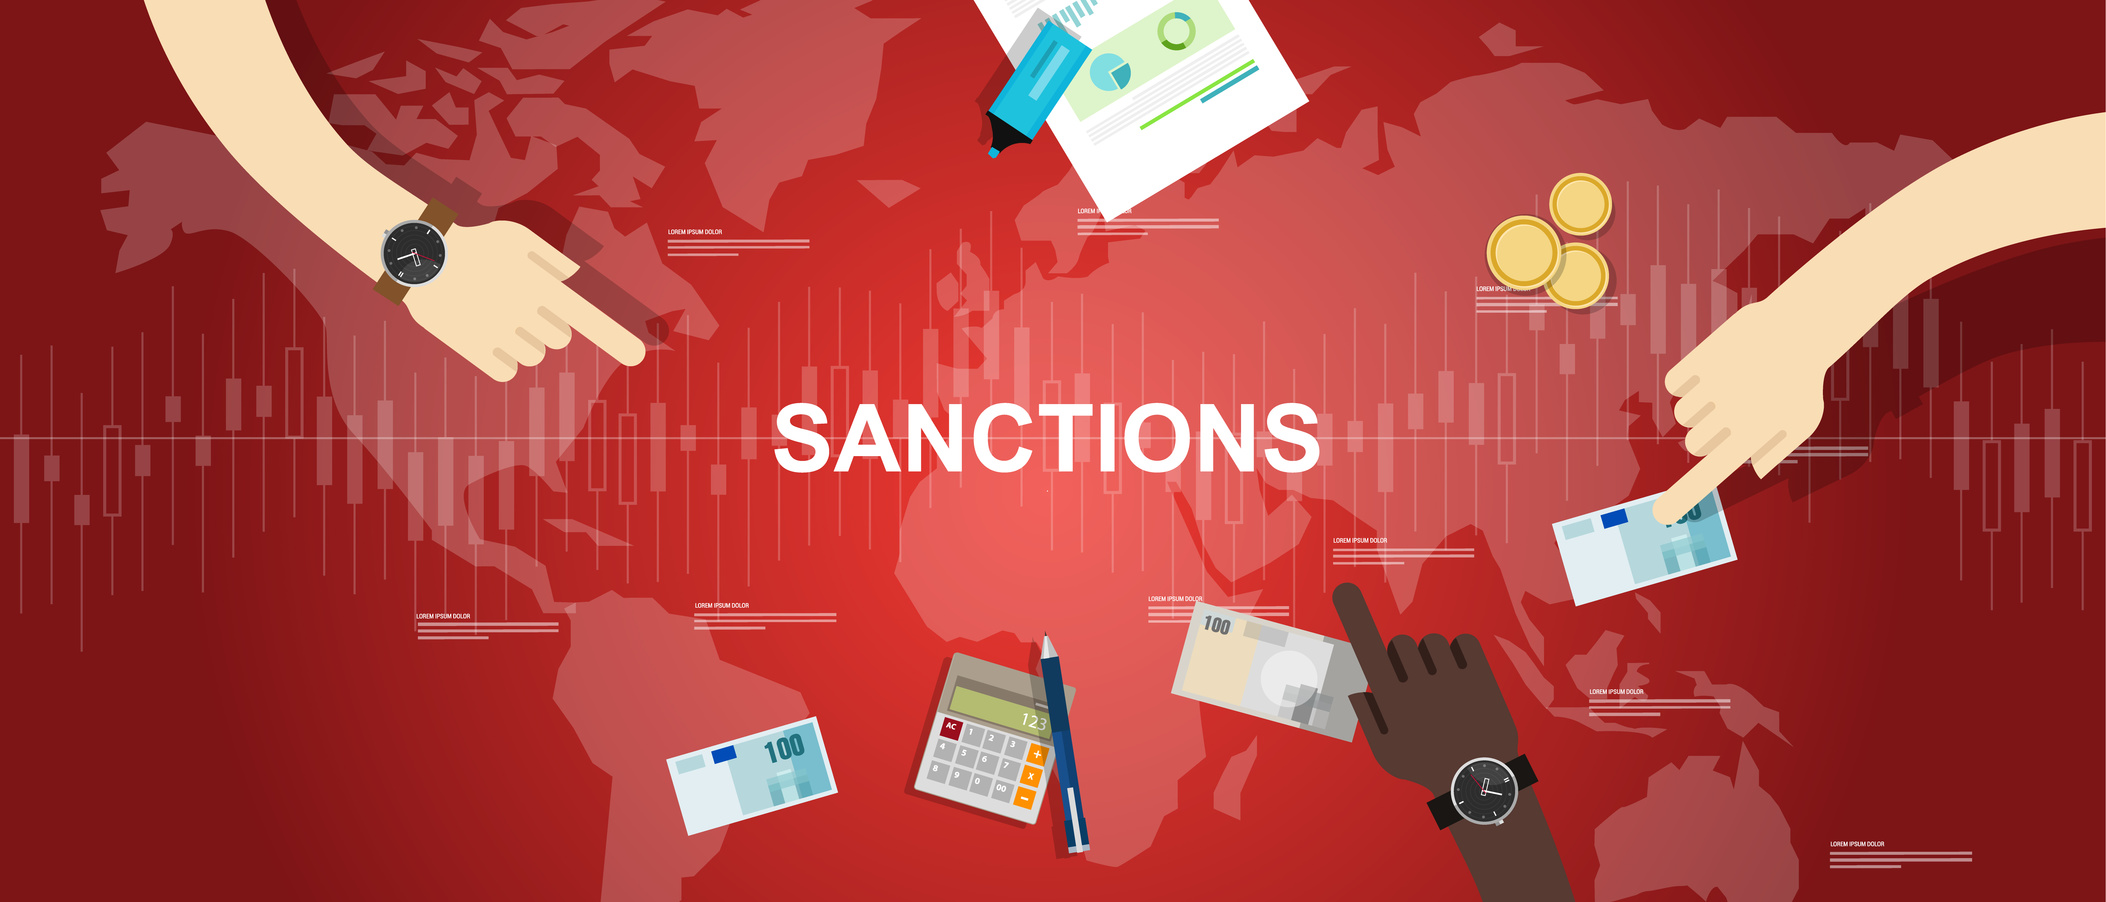 Sanctions image